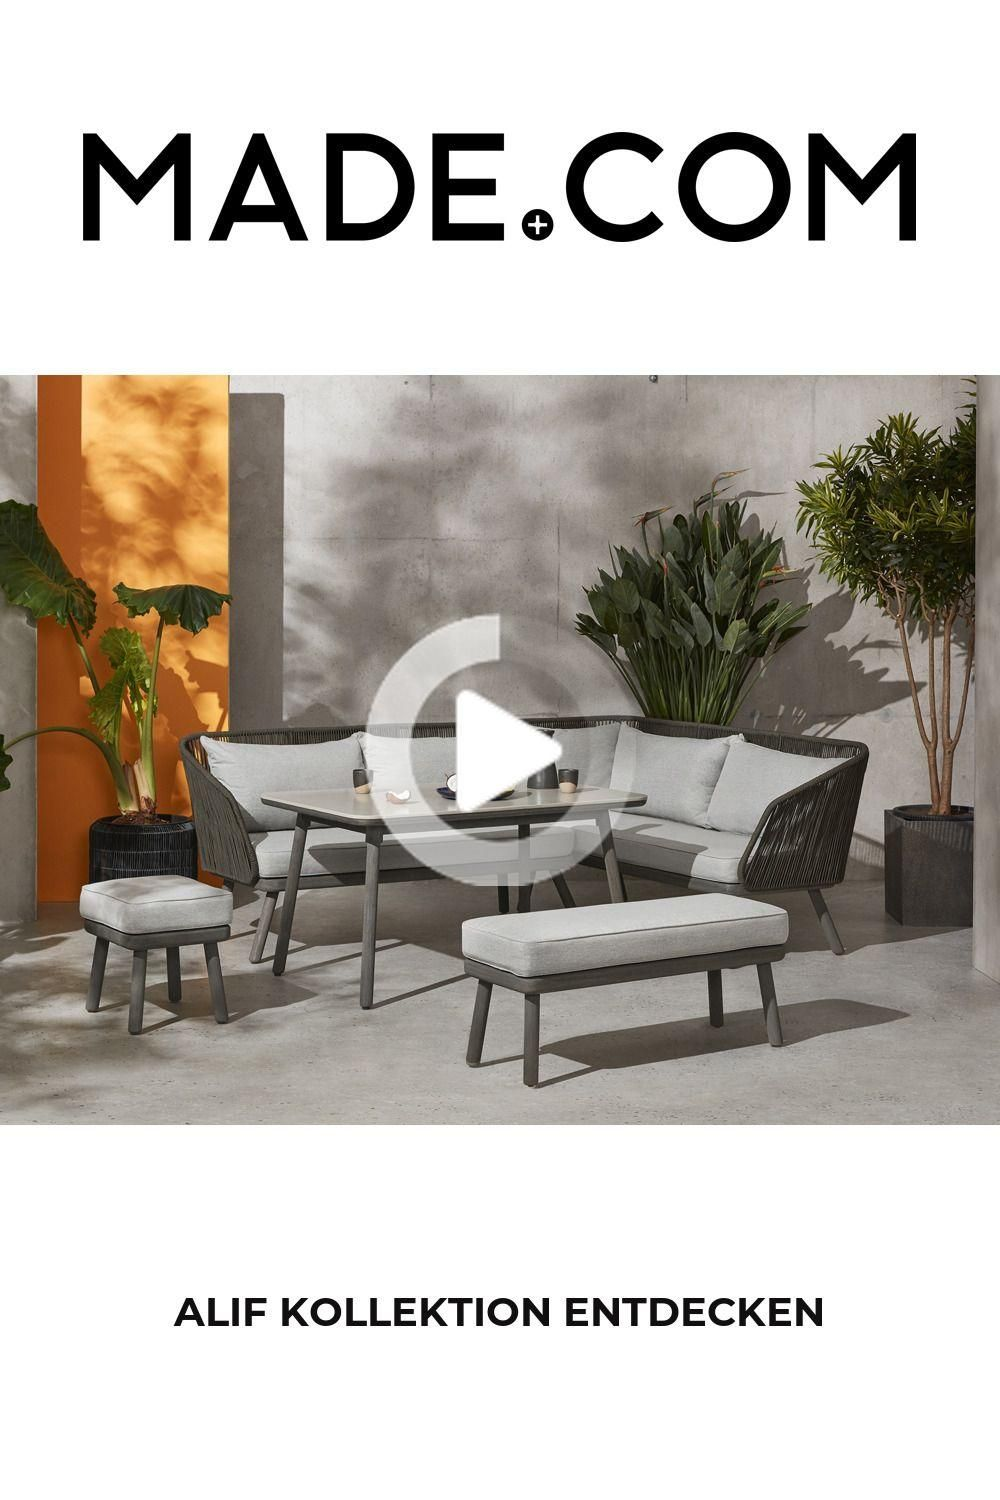 Scandi Cool Style For The Garden Or Conservatory The Alif Set Consisting Of Table Chairs And En 2020 Ensemble Table Et Chaise Salle A Manger Jardin Table Et Chaises